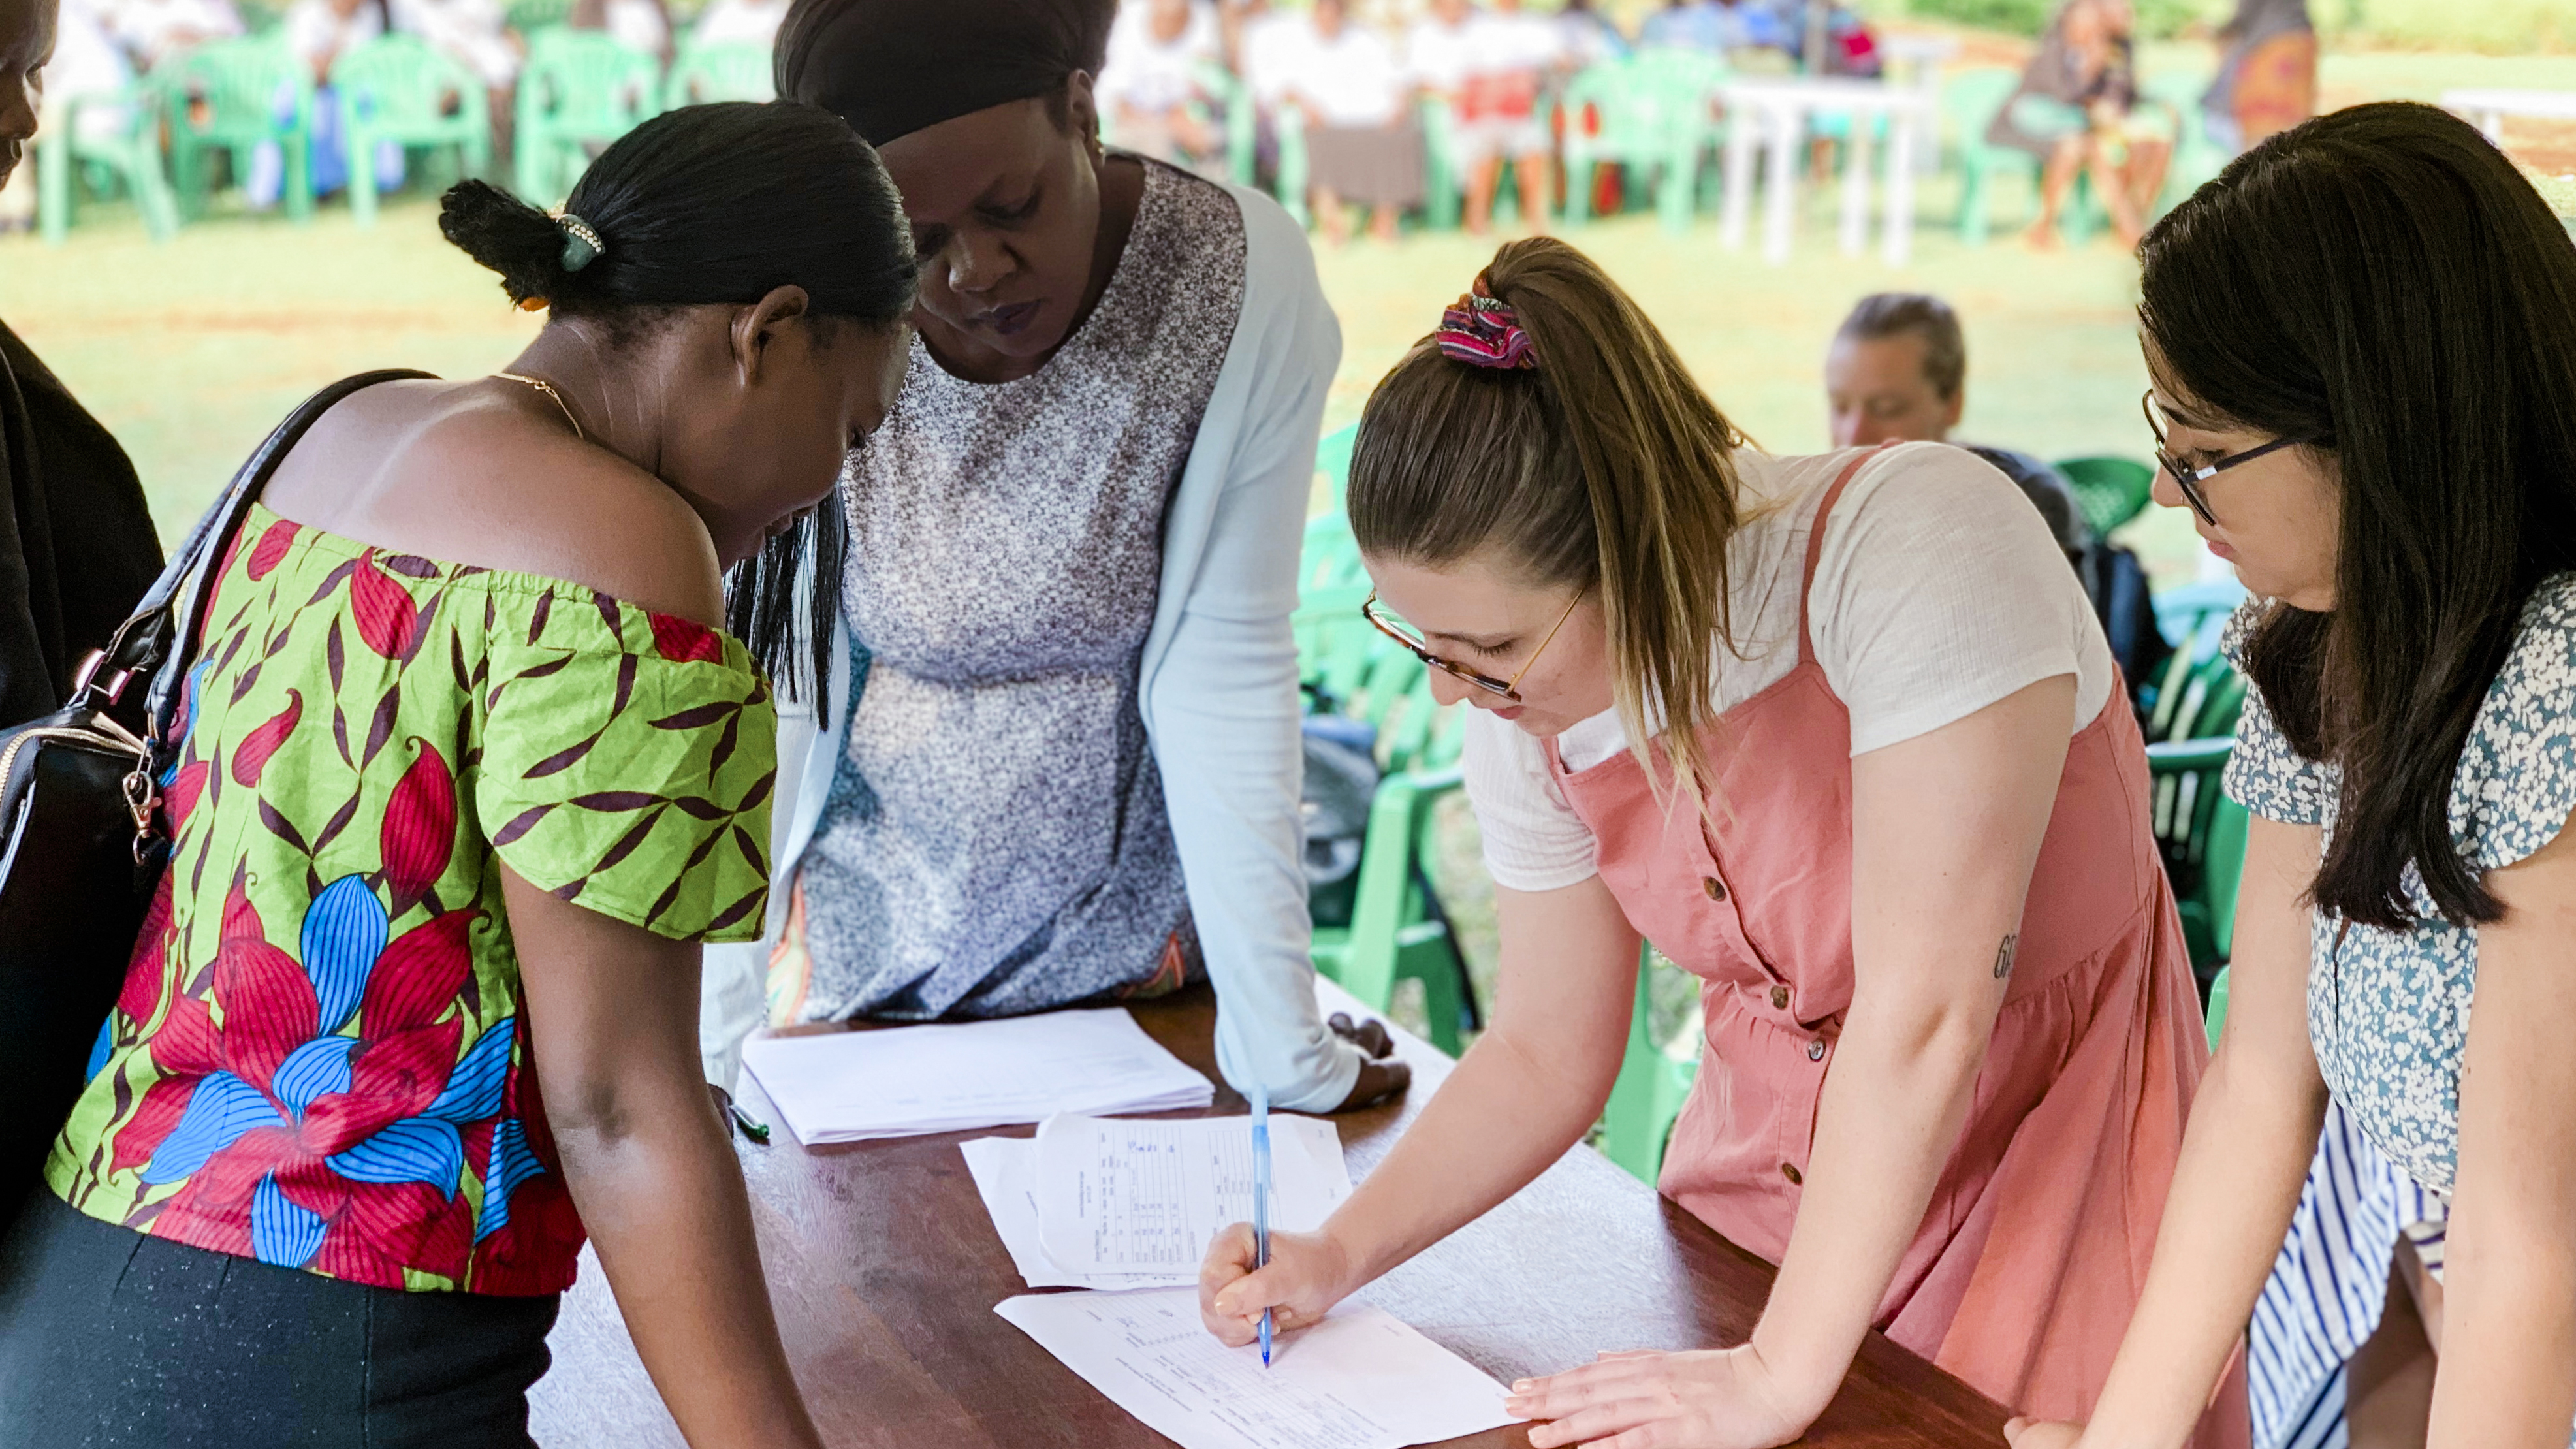 Students from the University of Oklahoma help with a peacebuilding conference in Uganda as part of an ongoing partnership between the OU Center for Peace and Development and local women's organizations in Uganda.